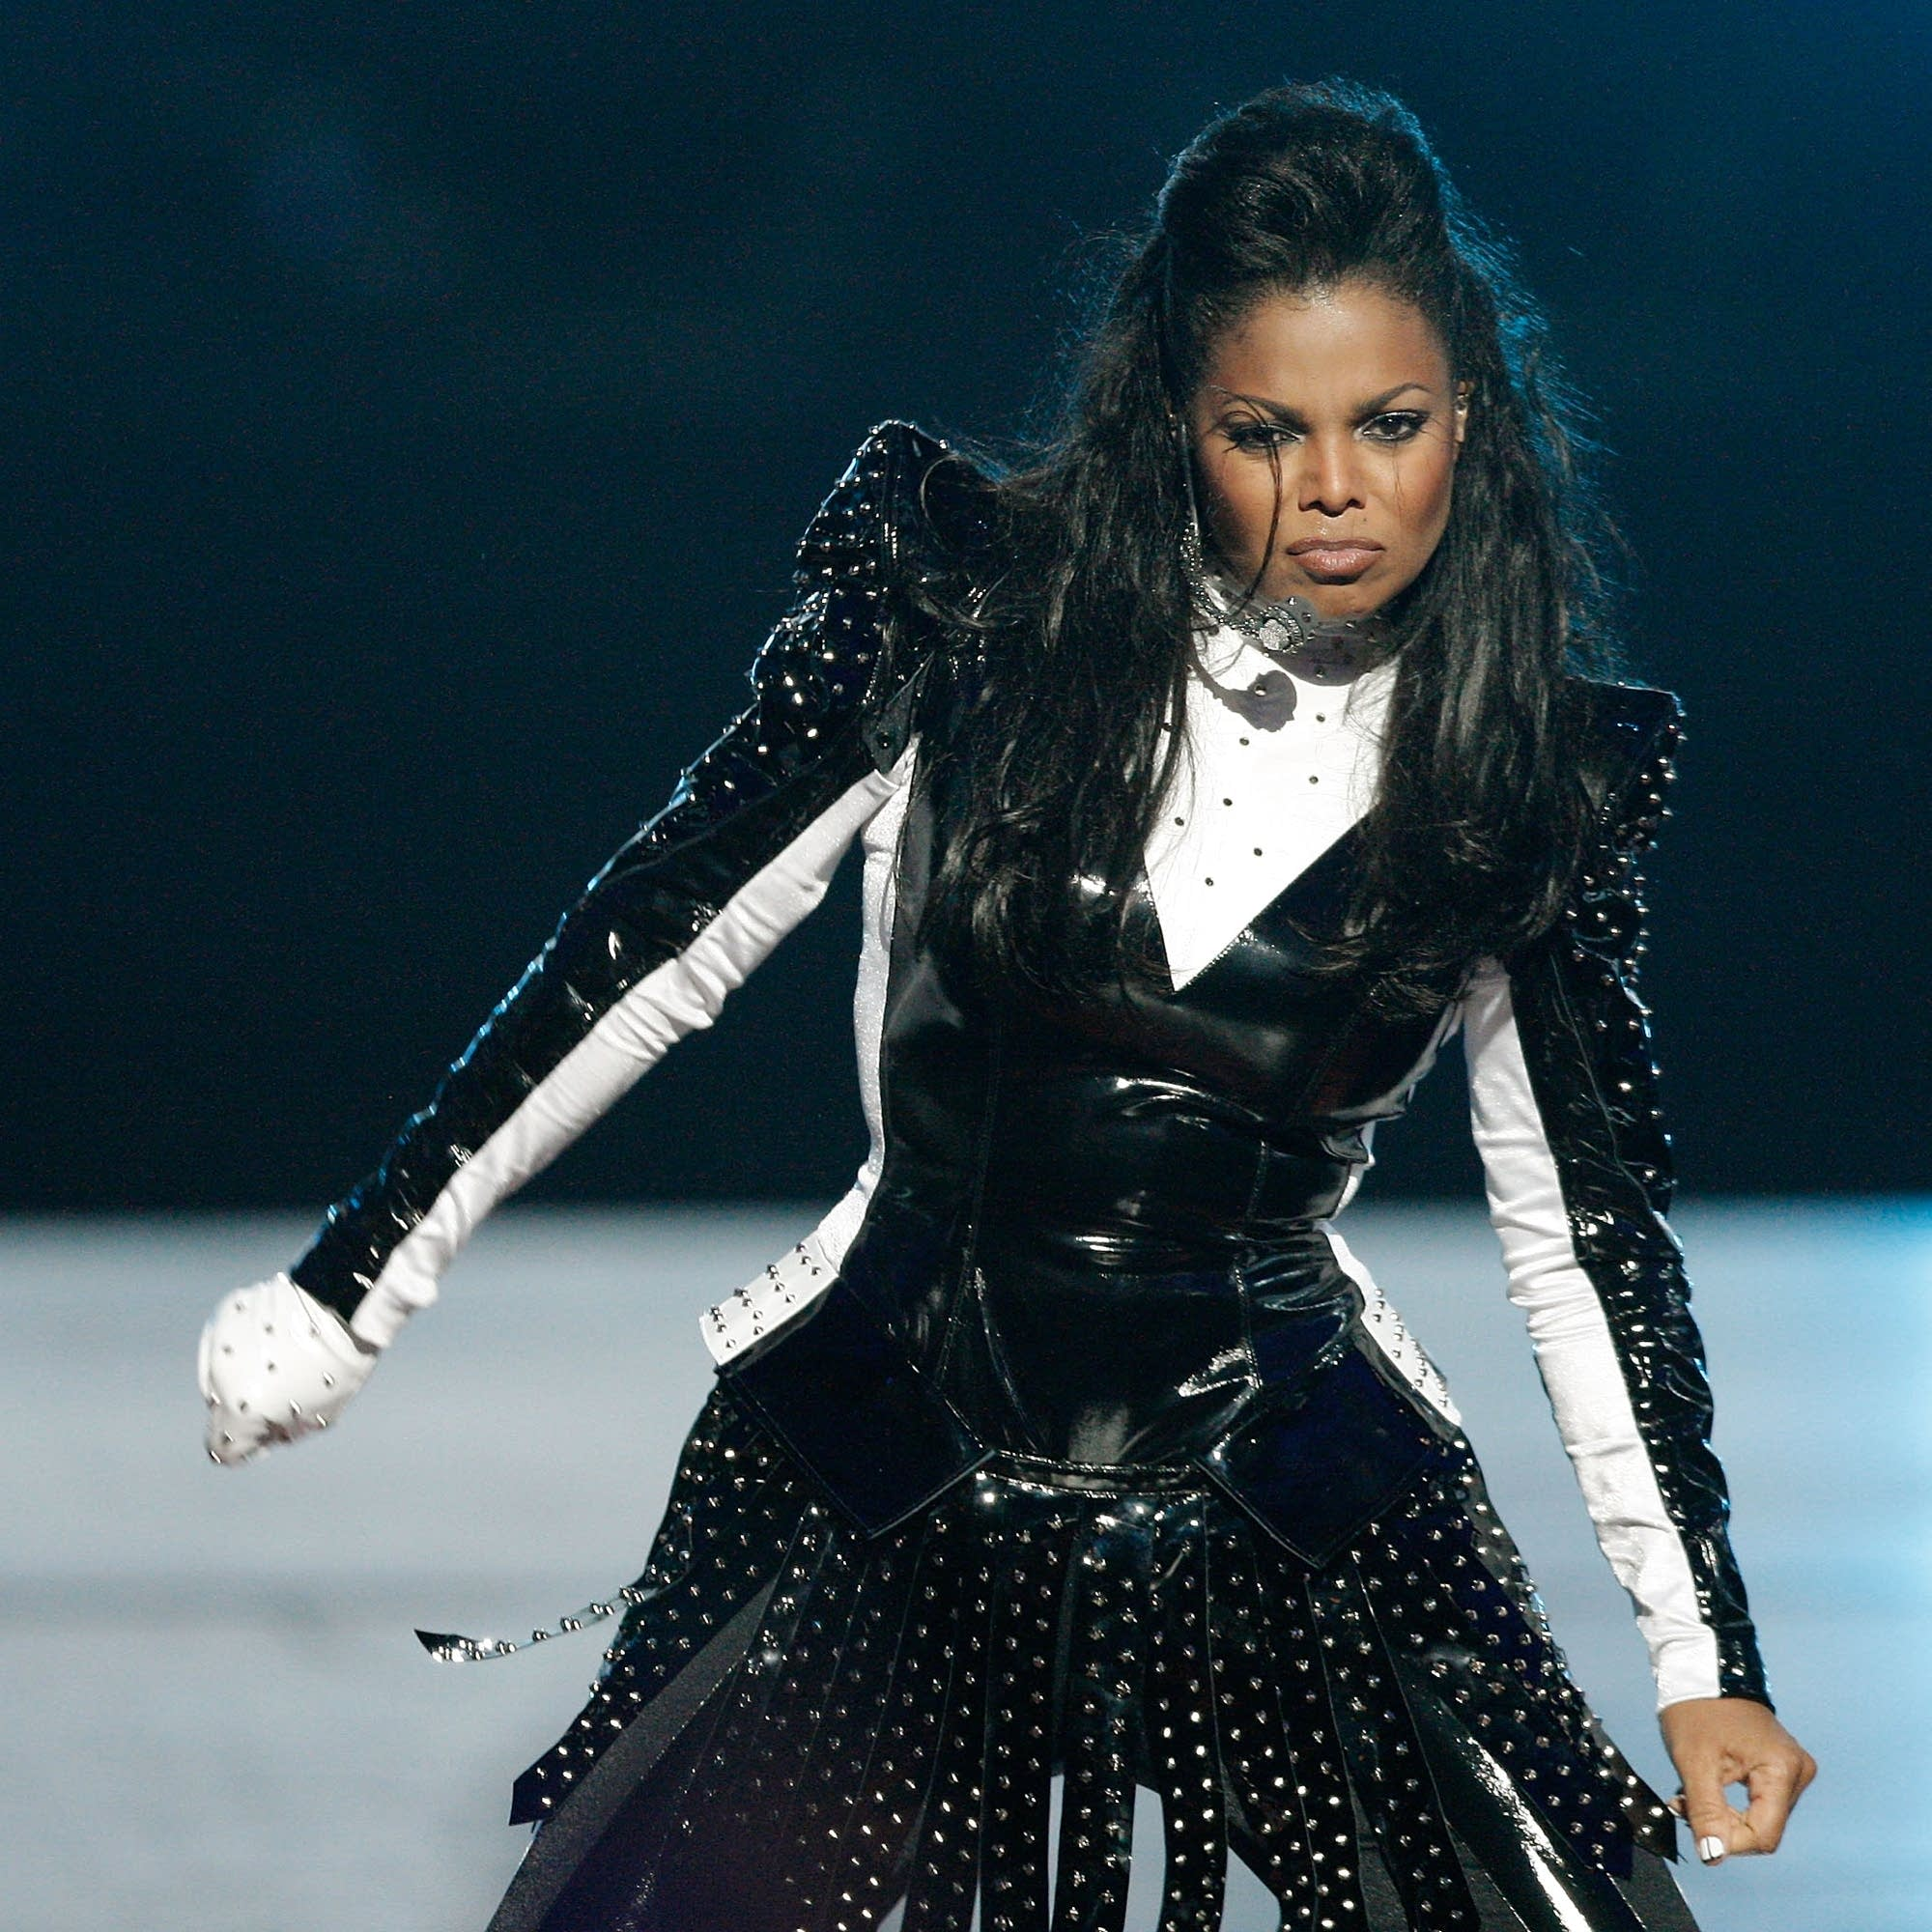 Janet Jackson performs at the MTV VMAs in 2009.